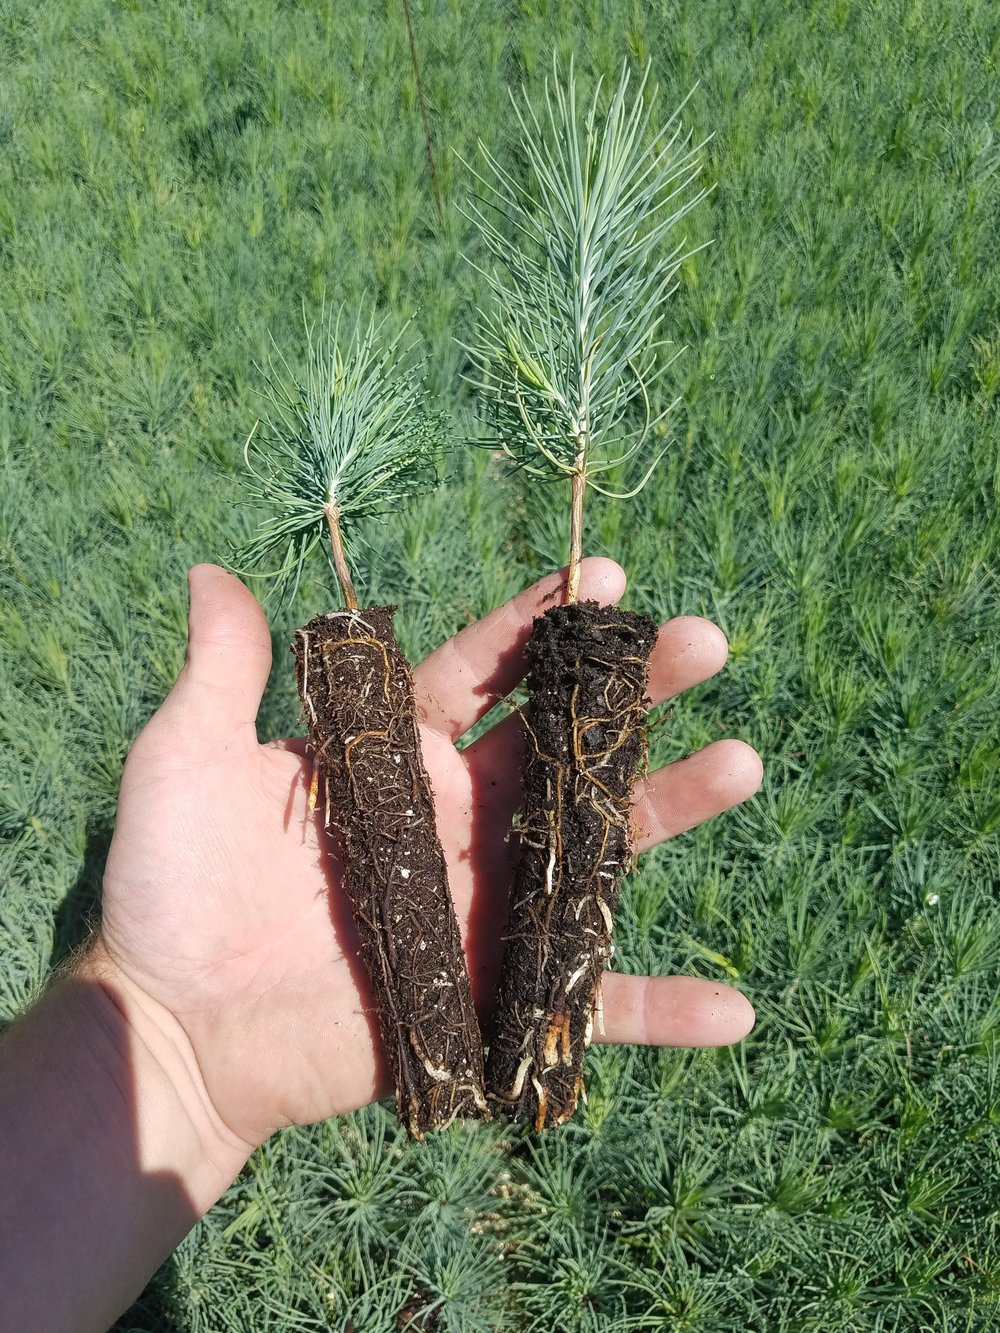 Preliminary results from a recent customer trial with Ponderosa Pine seedlings. Vermiculite soil blend (control) on the left and Rogue Biochar™ soil blend (test) on the right.